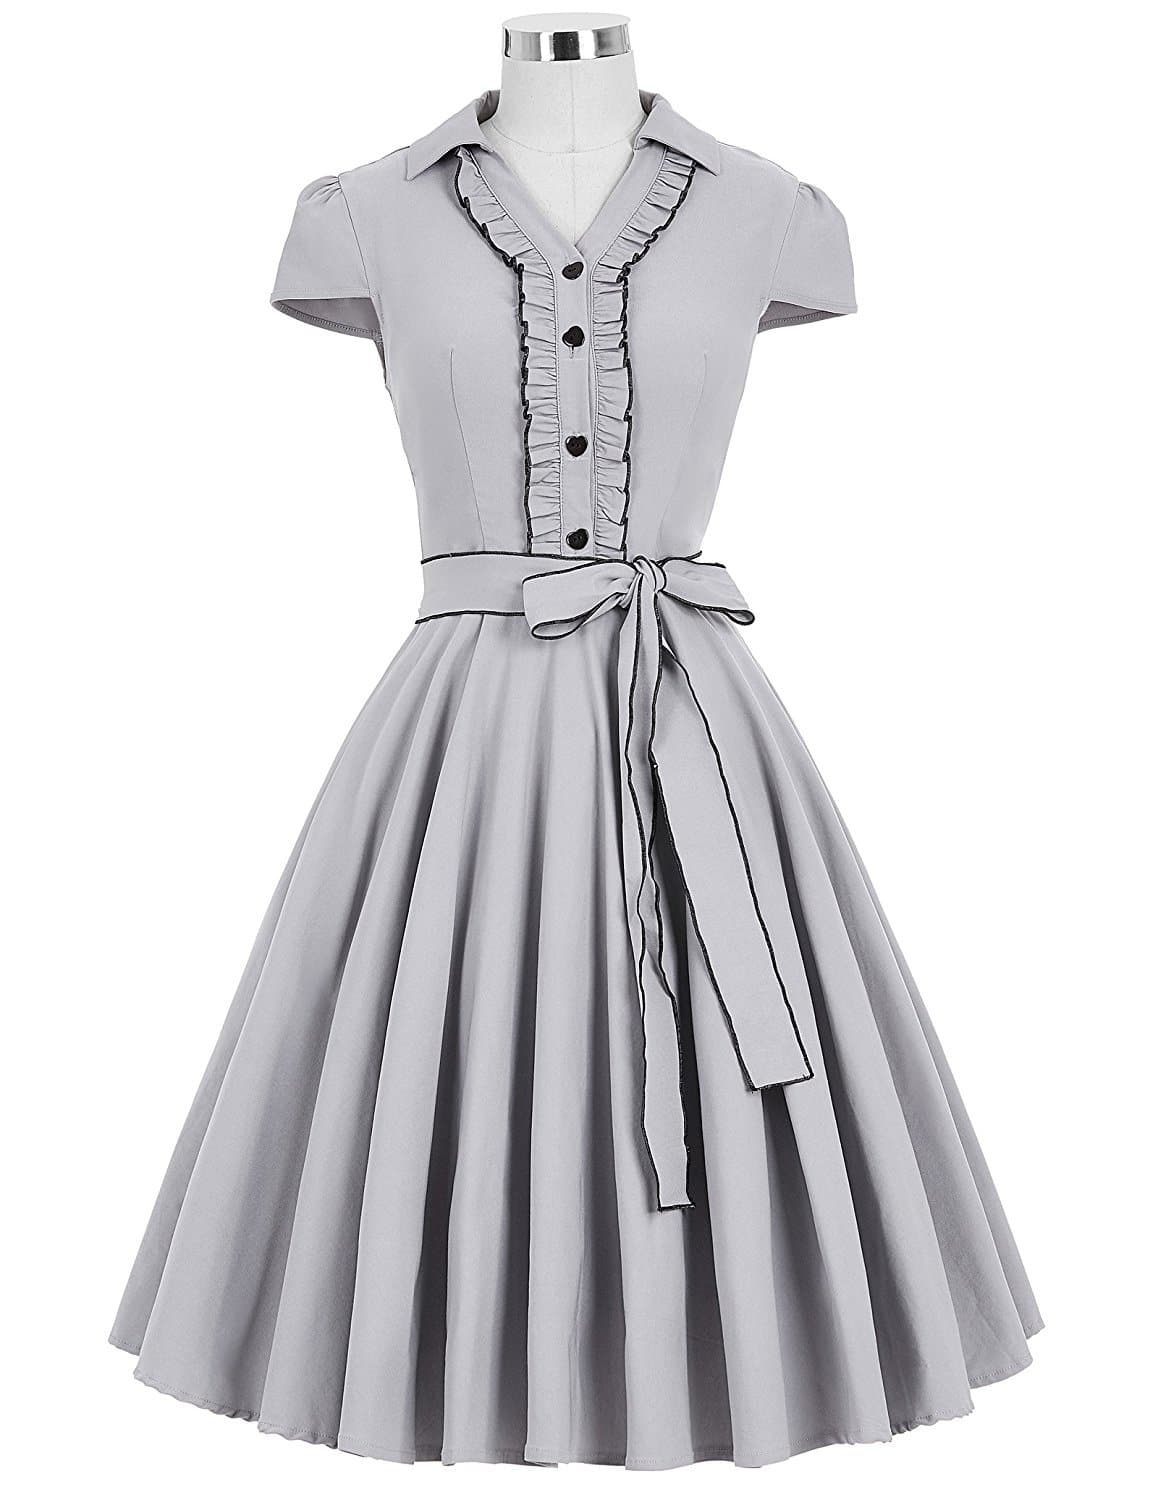 3323589bde Shirty' Gray Vintage Dress   Vintage Clothing Online - 1950s Glam